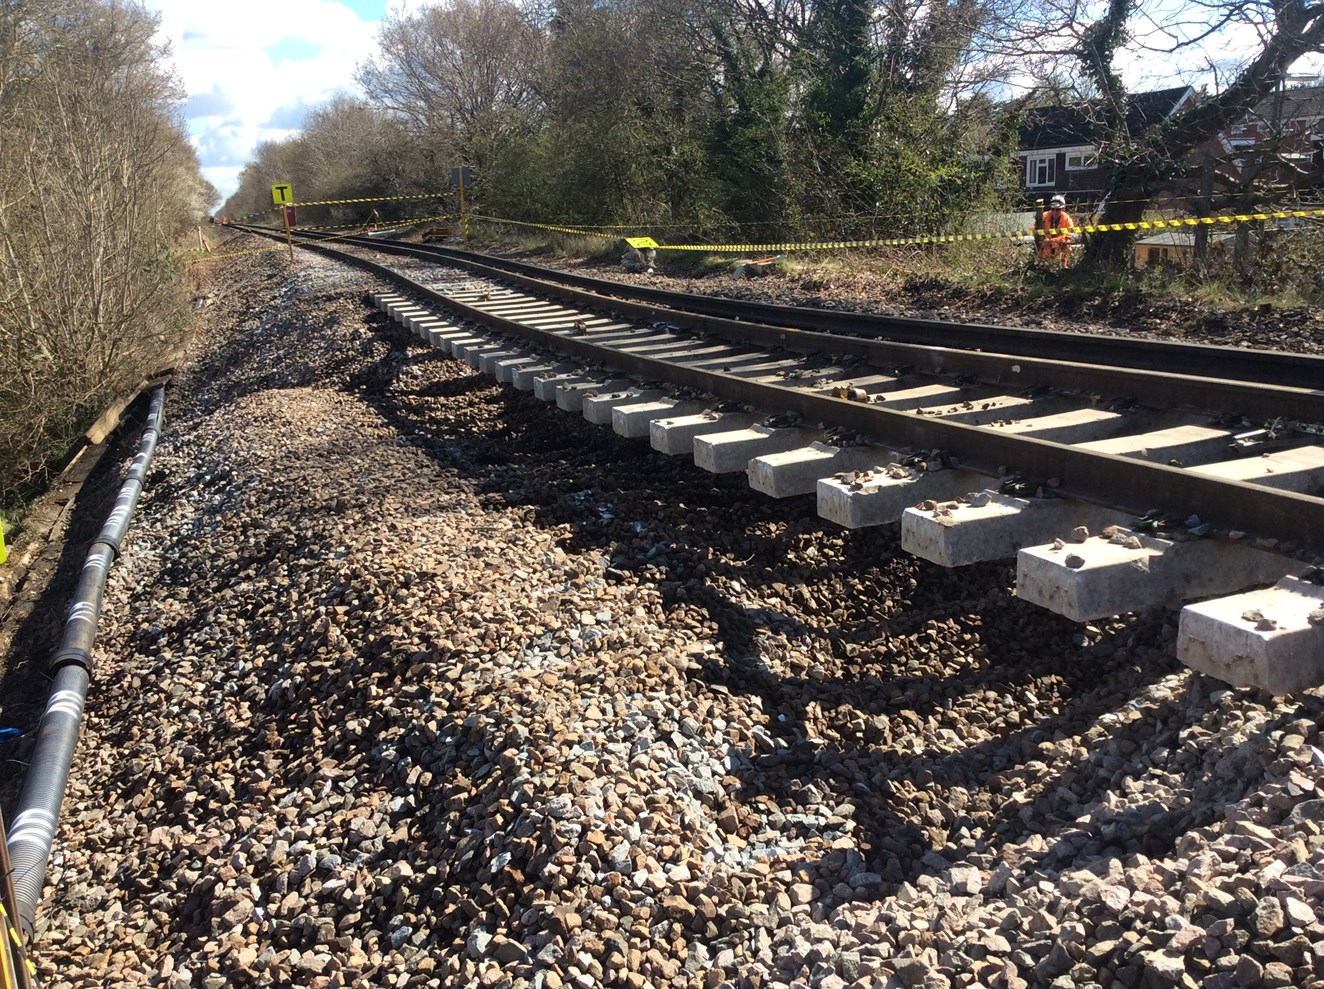 Passengers advised to check before they travel as train services between Farnham and Alton stay closed until early May following landslip: Wrecclesham Landslip 4